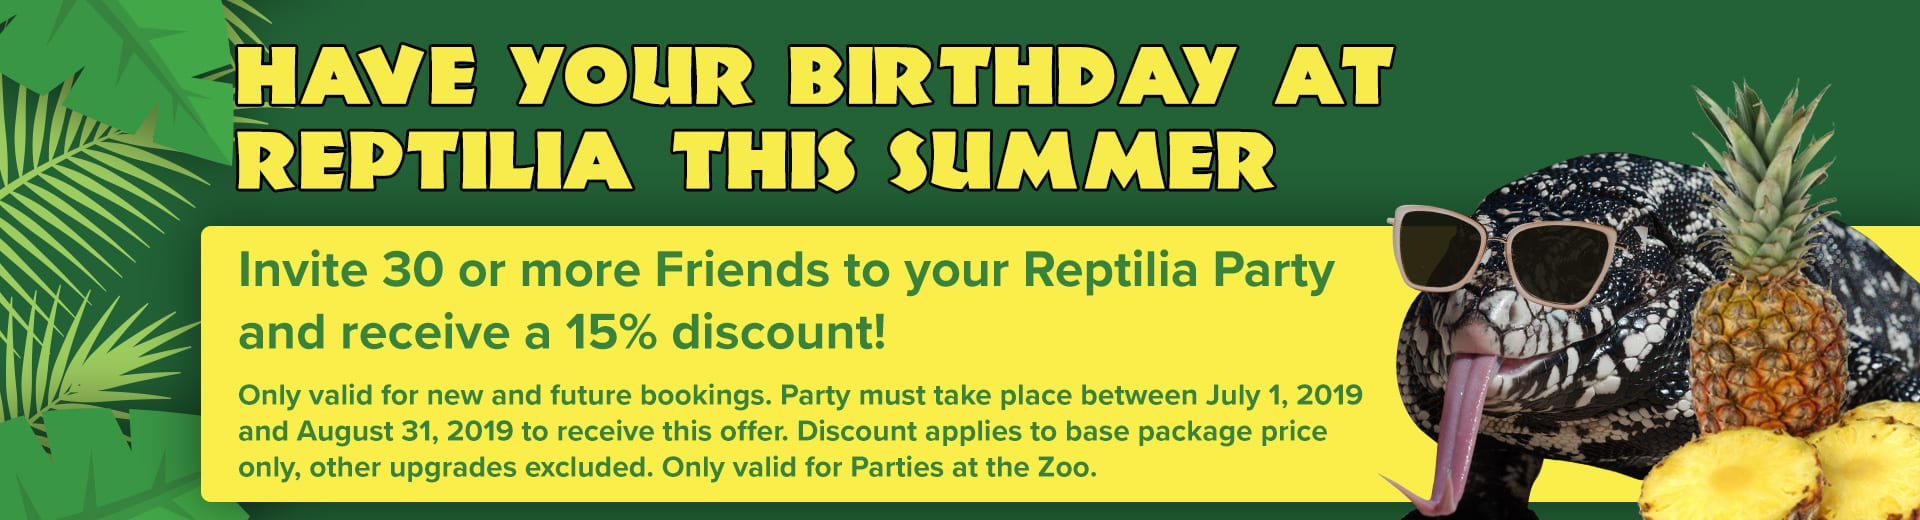 Summer Birthday Ideas and Discounts at Reptilia for Kids